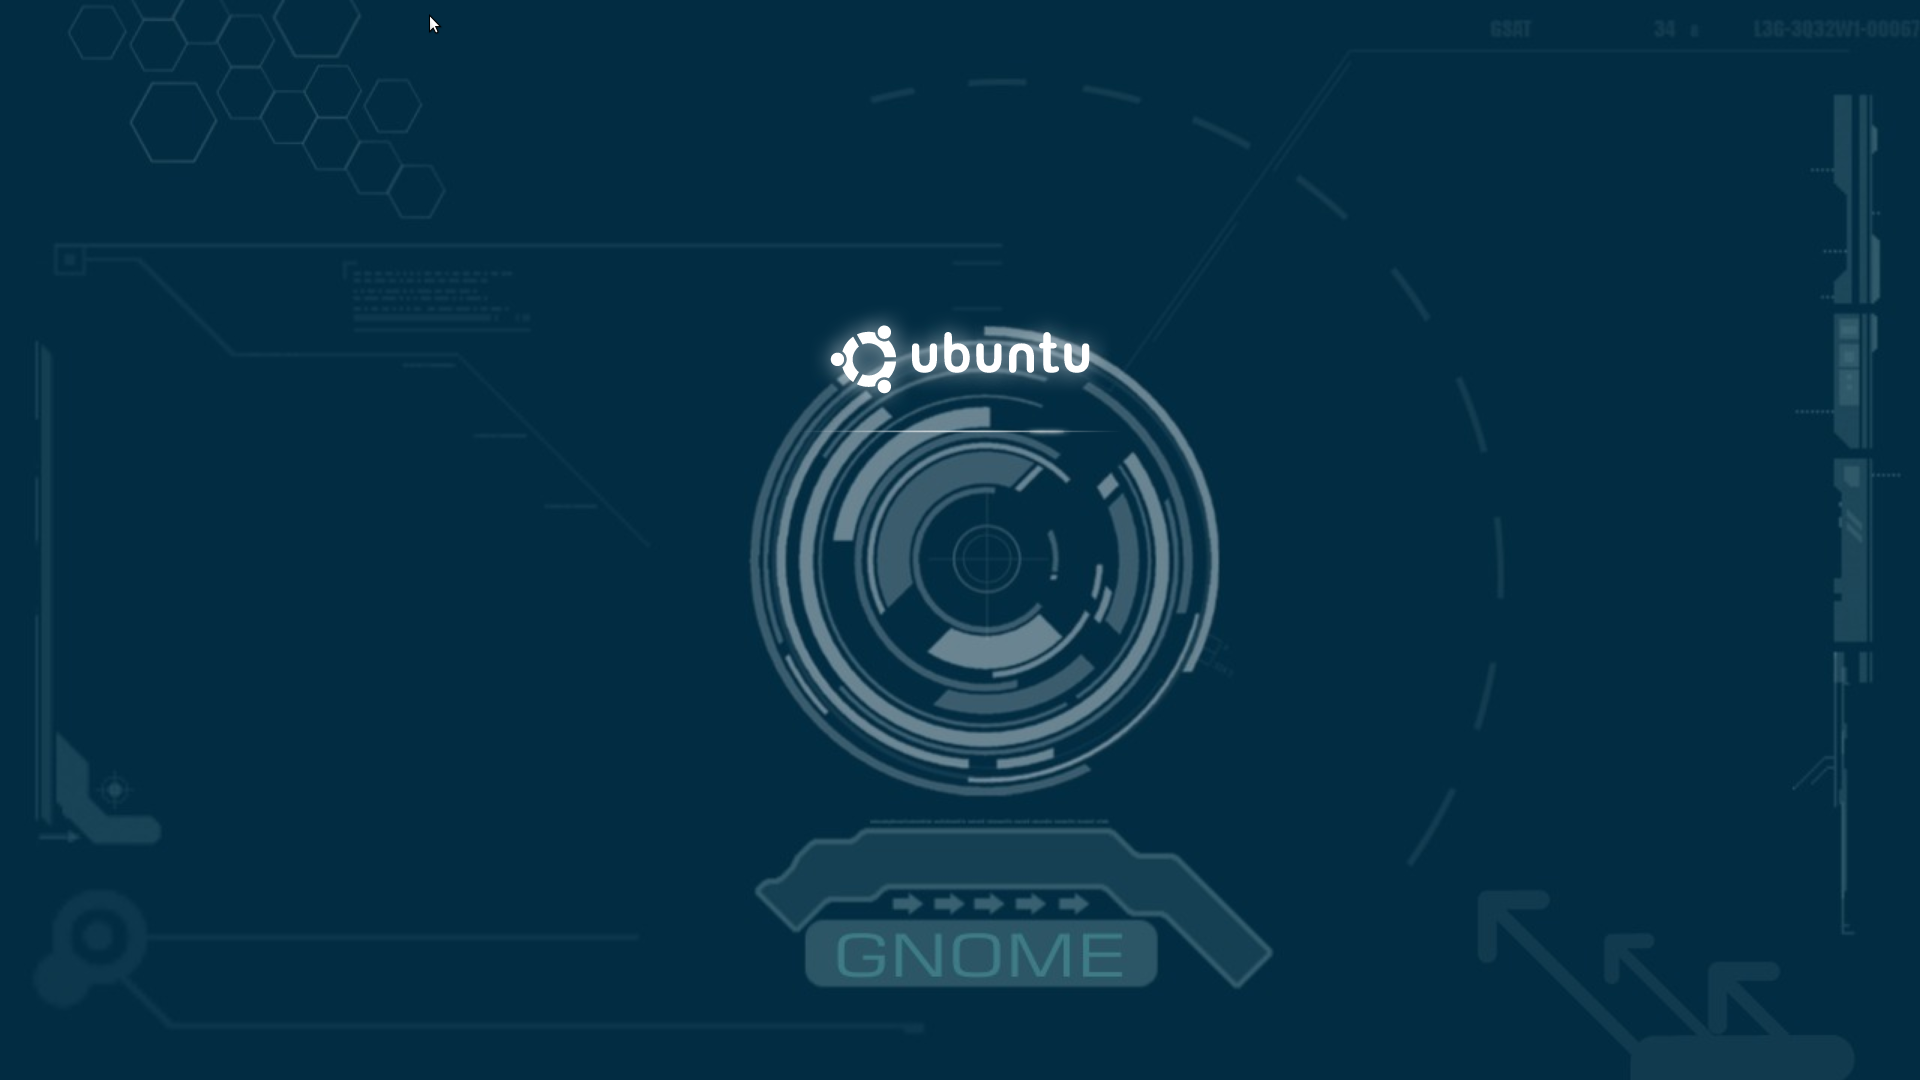 Photos Download Ubuntu Wallpapers Hd Gnome Wallpaper